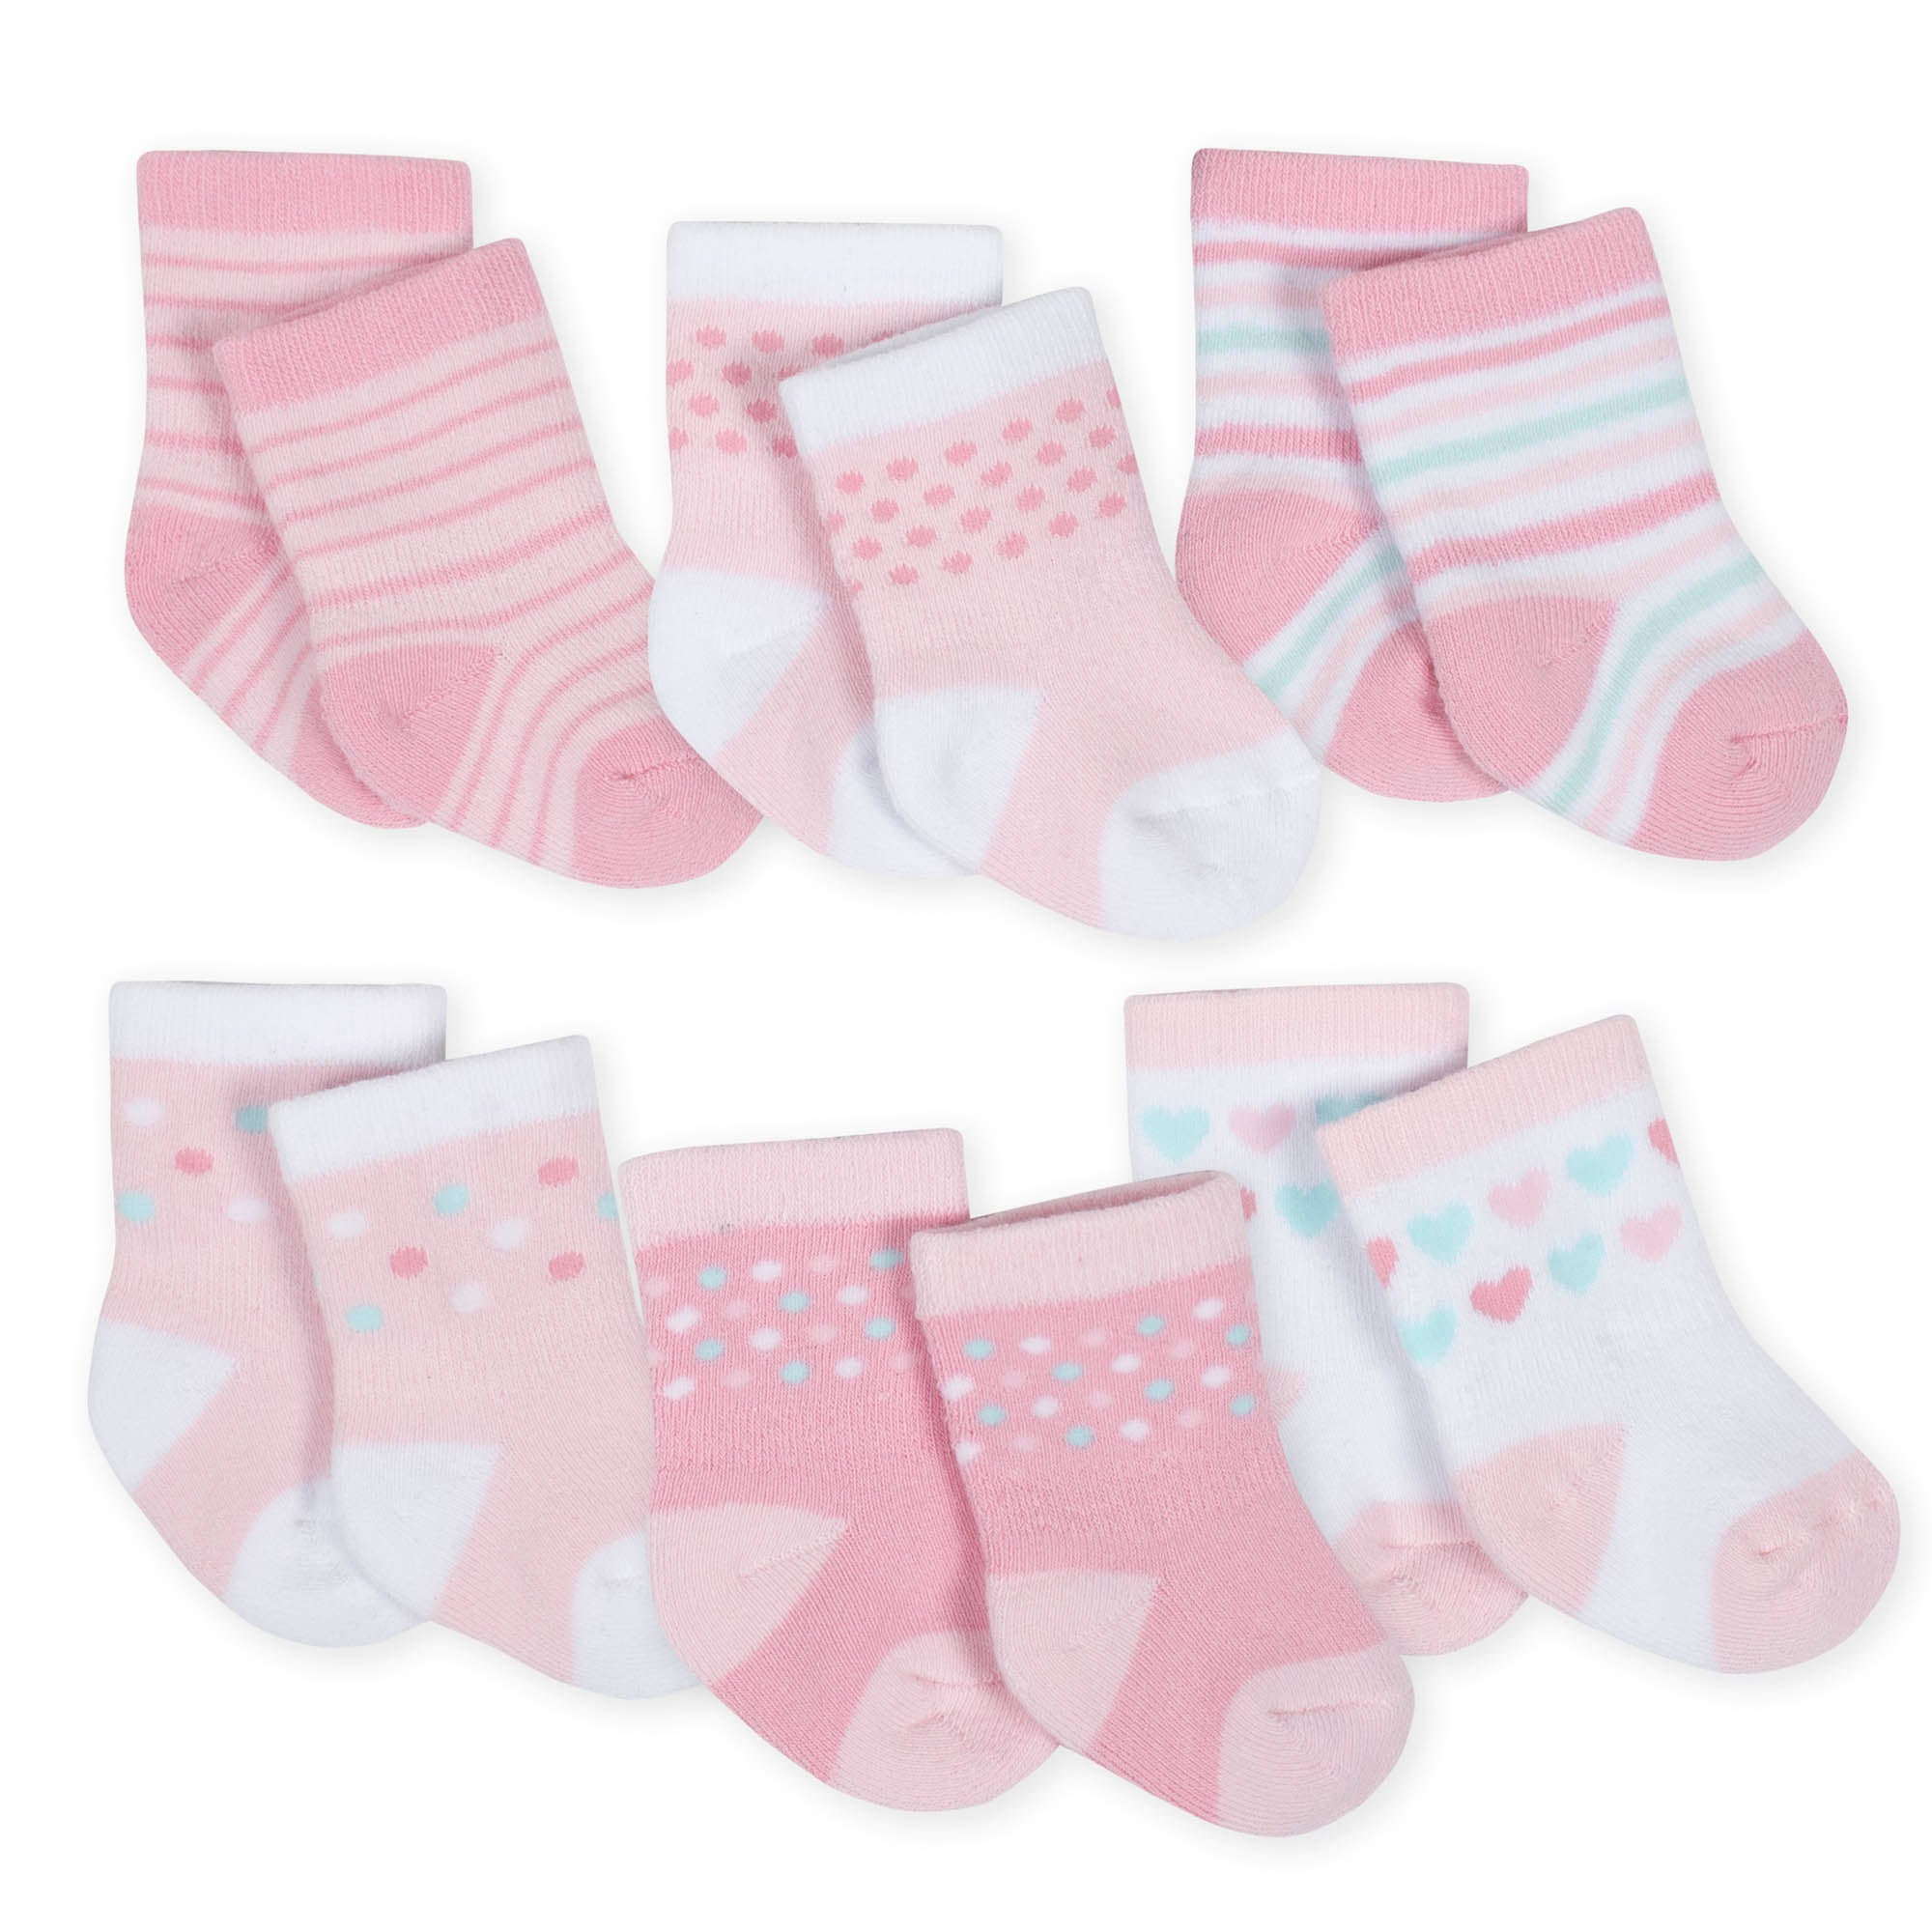 6-Pack Girls Princess Castle Wiggle Proof Terry Crew Socks-Gerber Childrenswear Wholesale